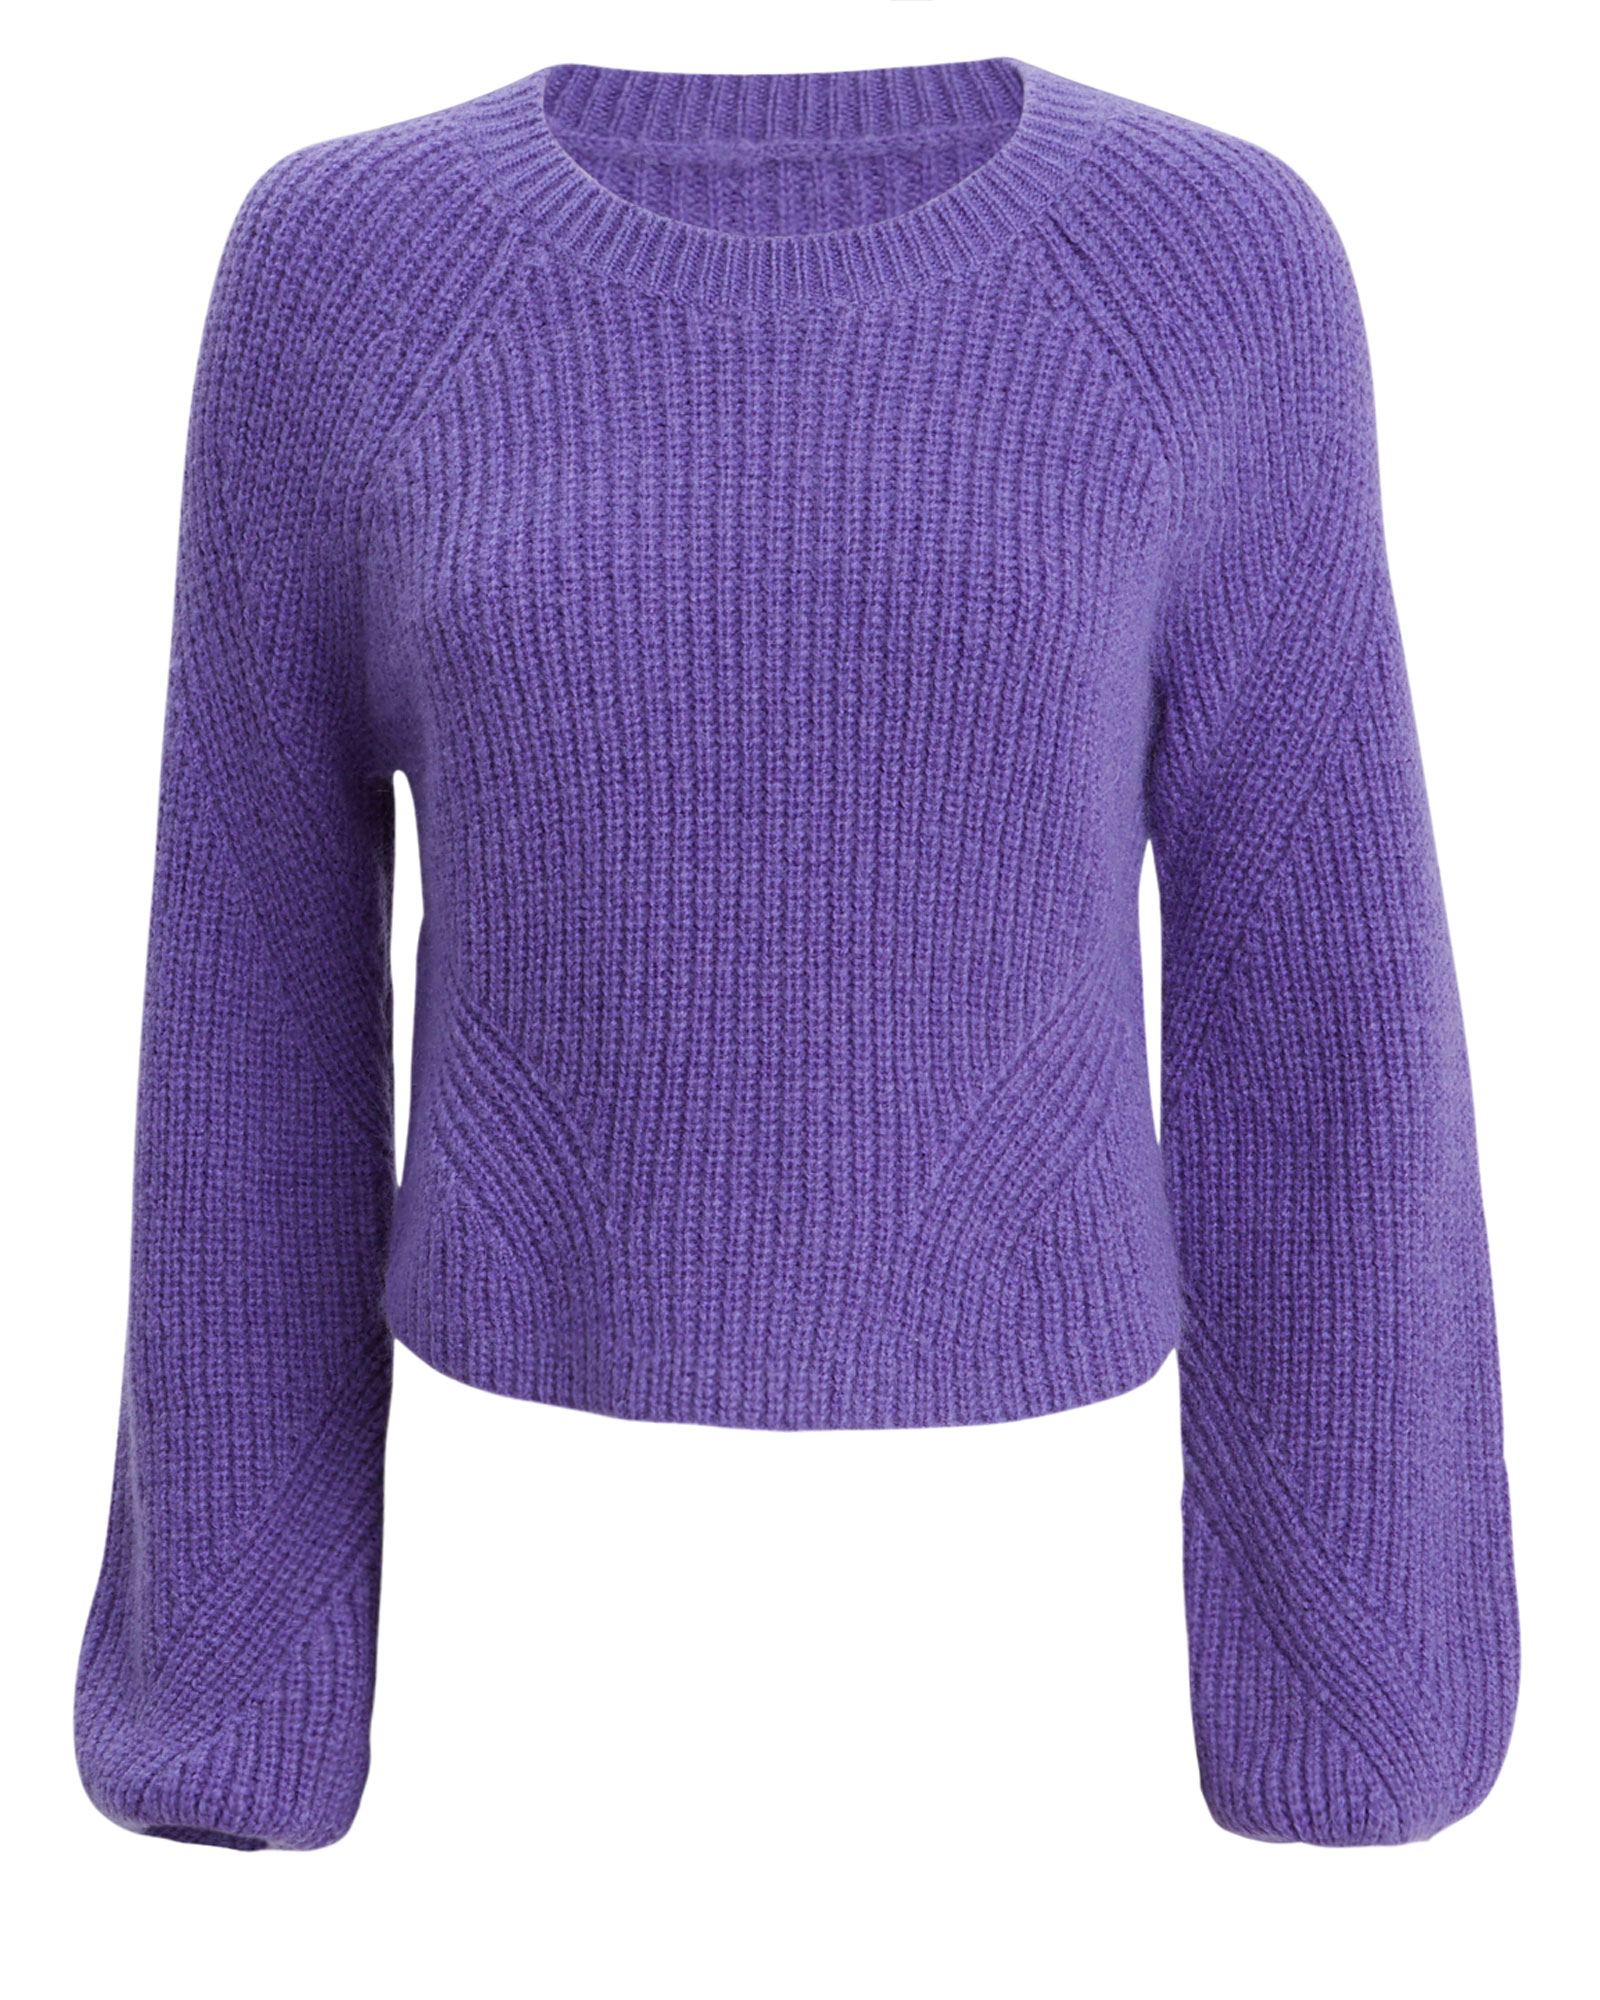 EXCLUSIVE FOR INTERMIX Intermix Luella Sweater Urle